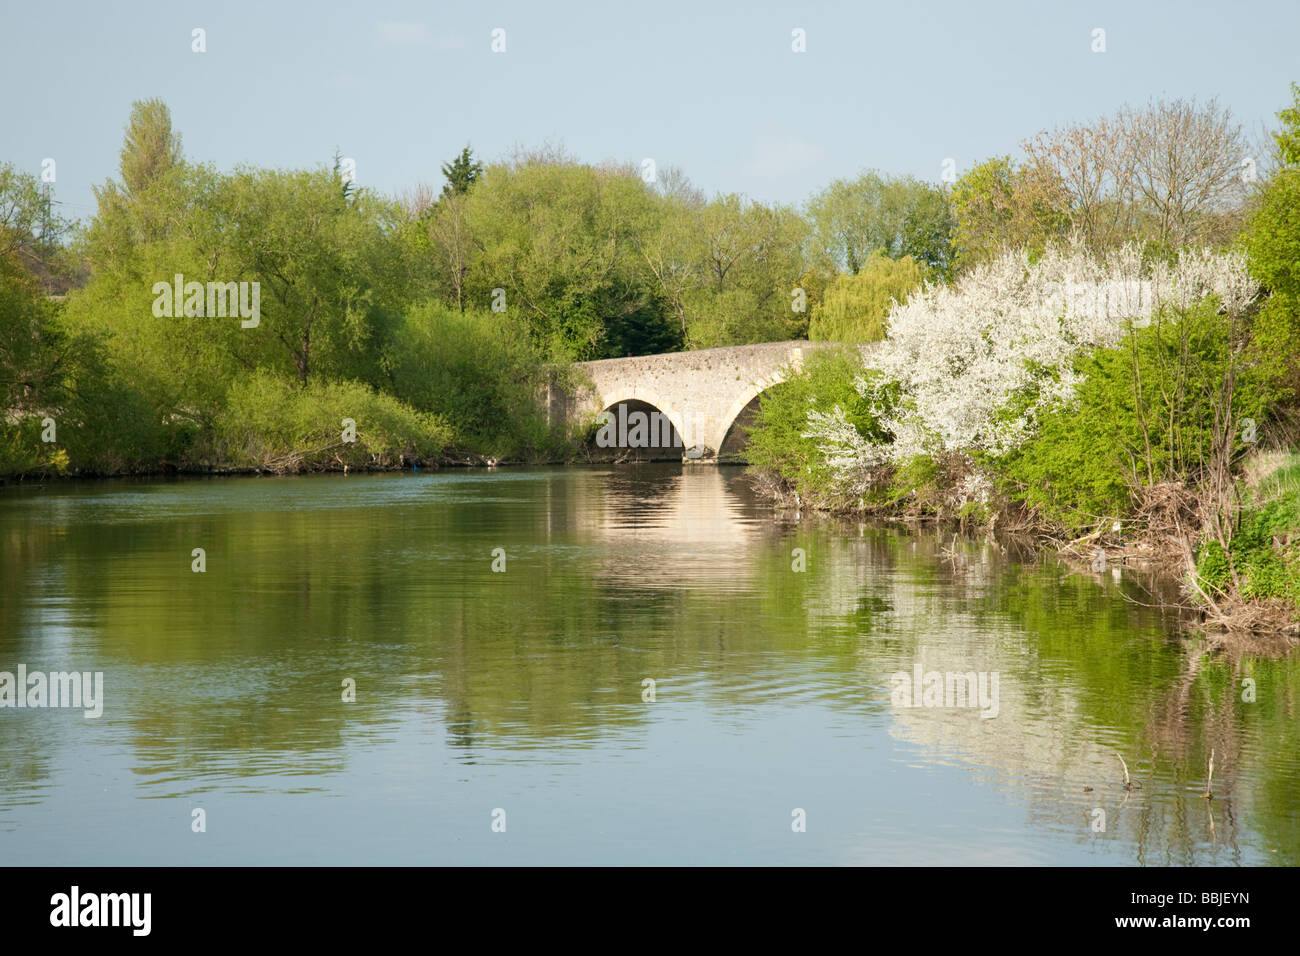 Sutton road bridge over the River Thames at Culham Oxfordshire Uk - Stock Image